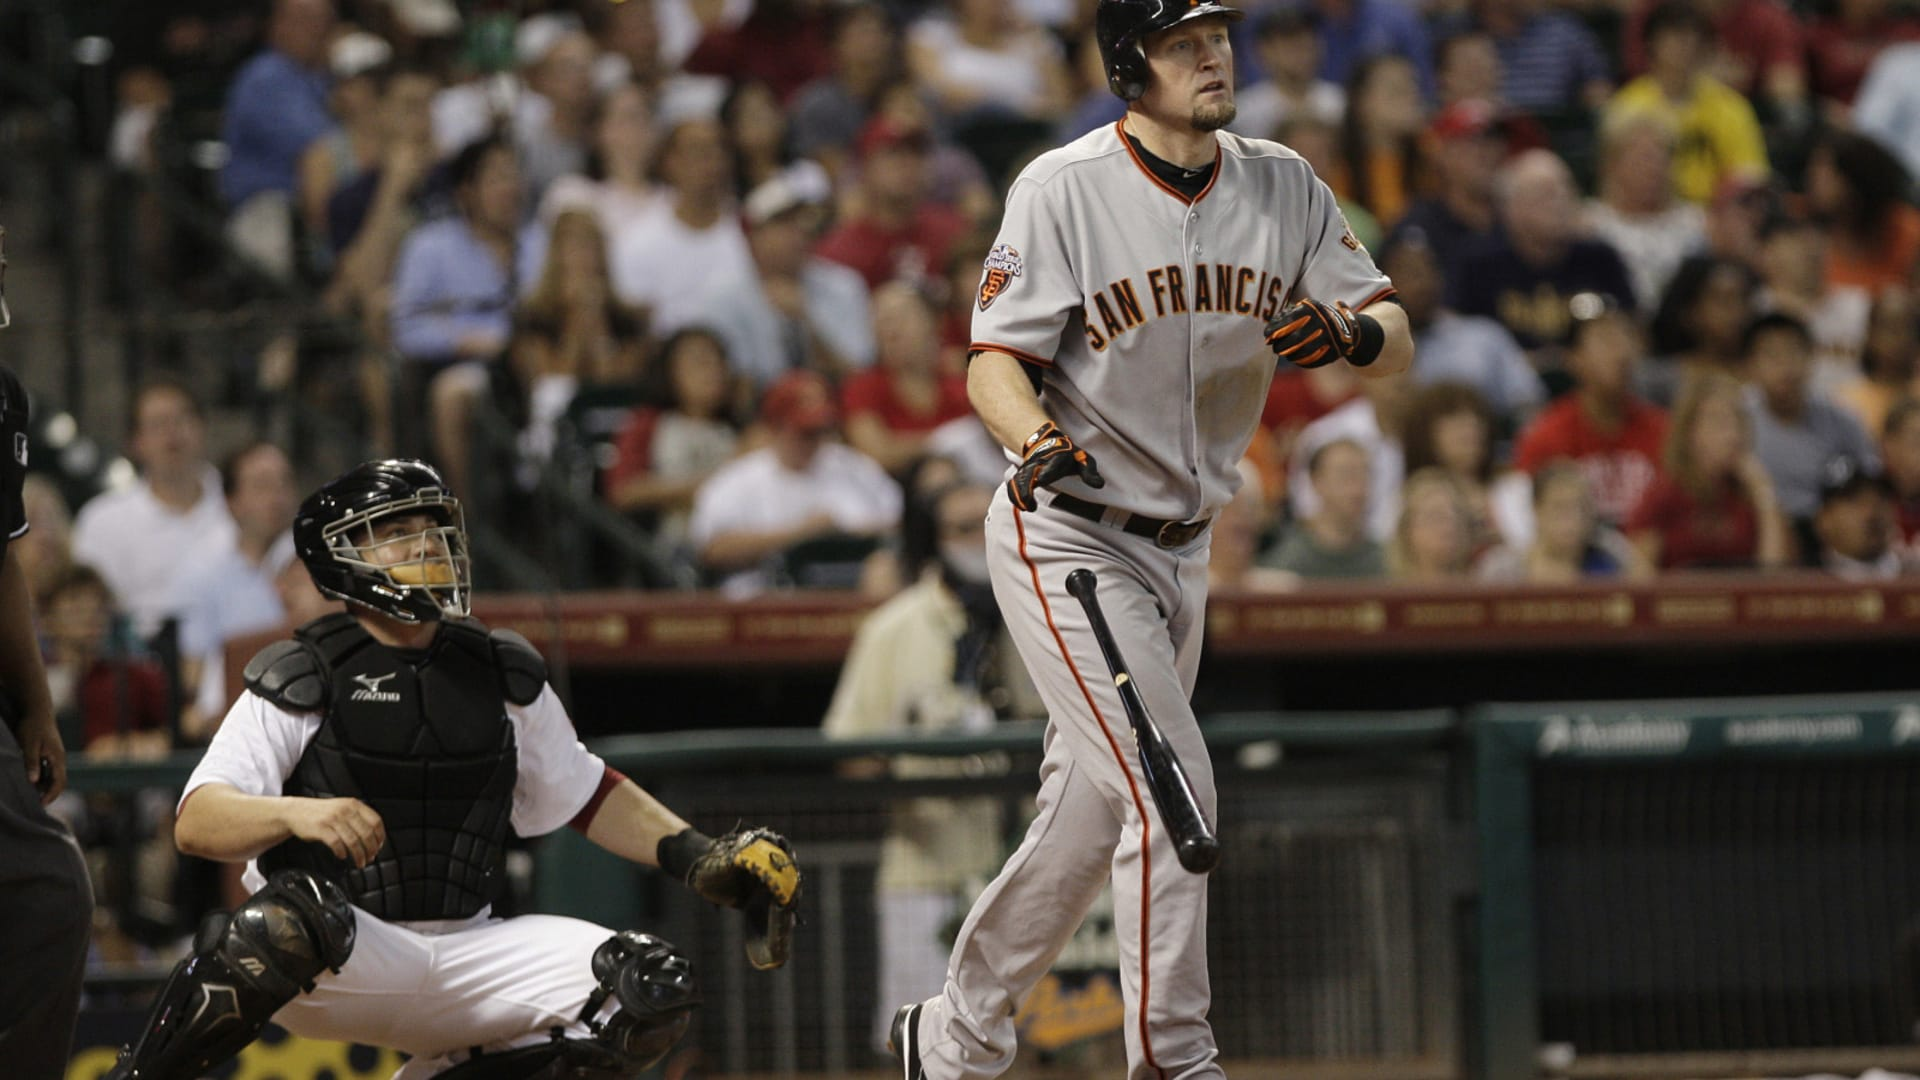 The Giants and Aubrey Huff is a no-win situation for all involved